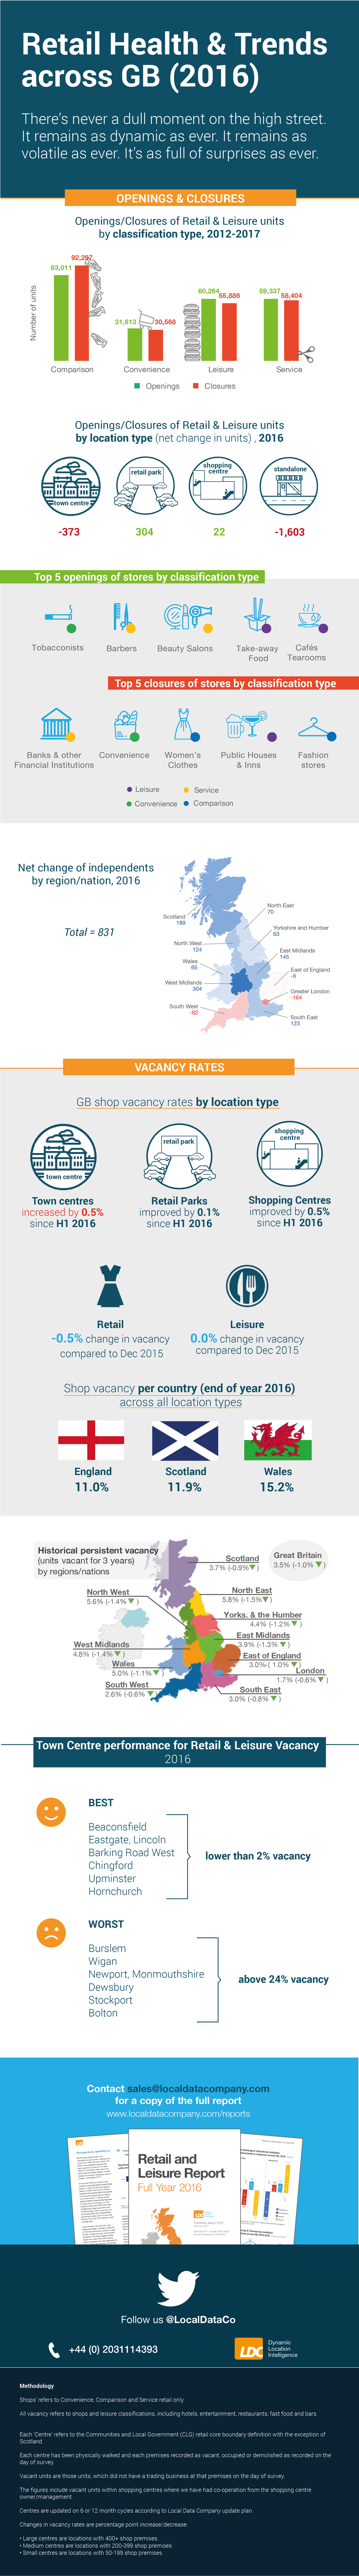 Infographic - Retail & Leisure Report 2016 - March 2017.png